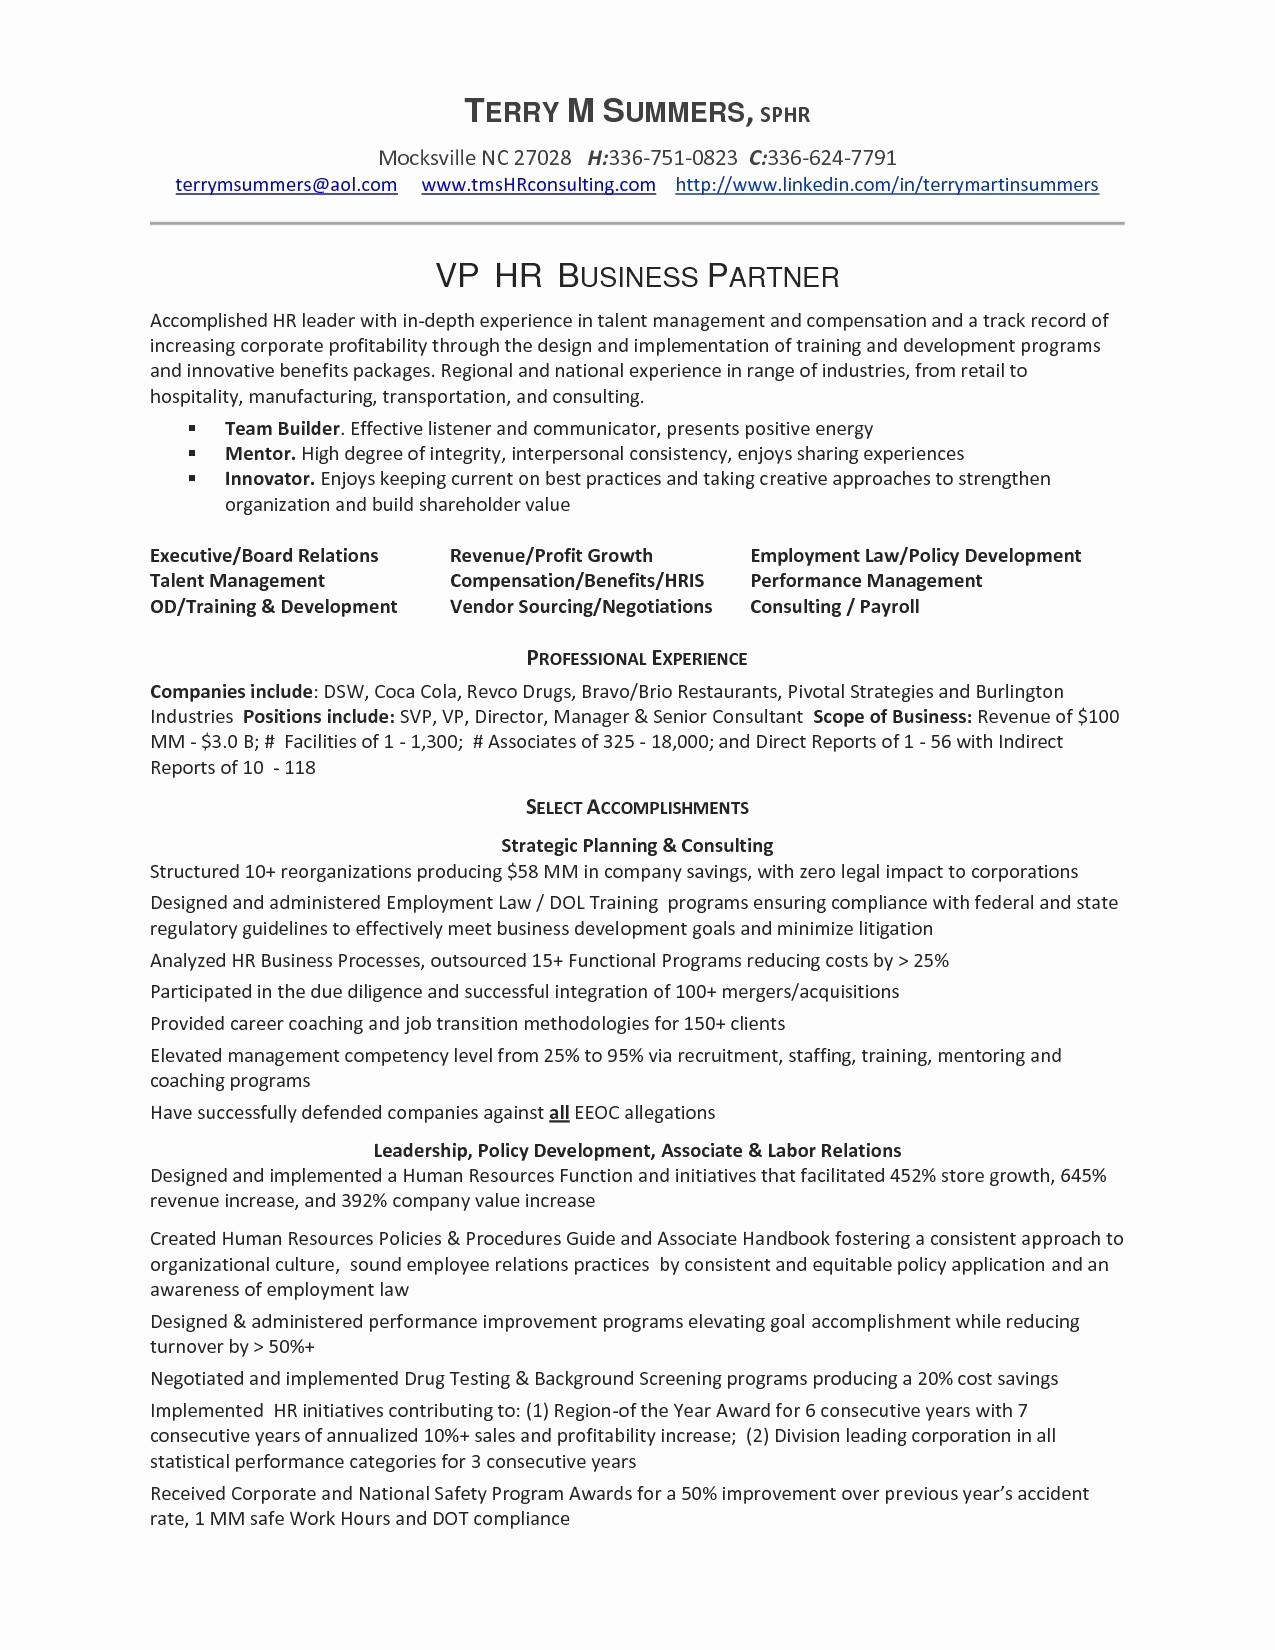 Principal Resume Template - Resume Template Docx Lovely Executive Director Resume Template